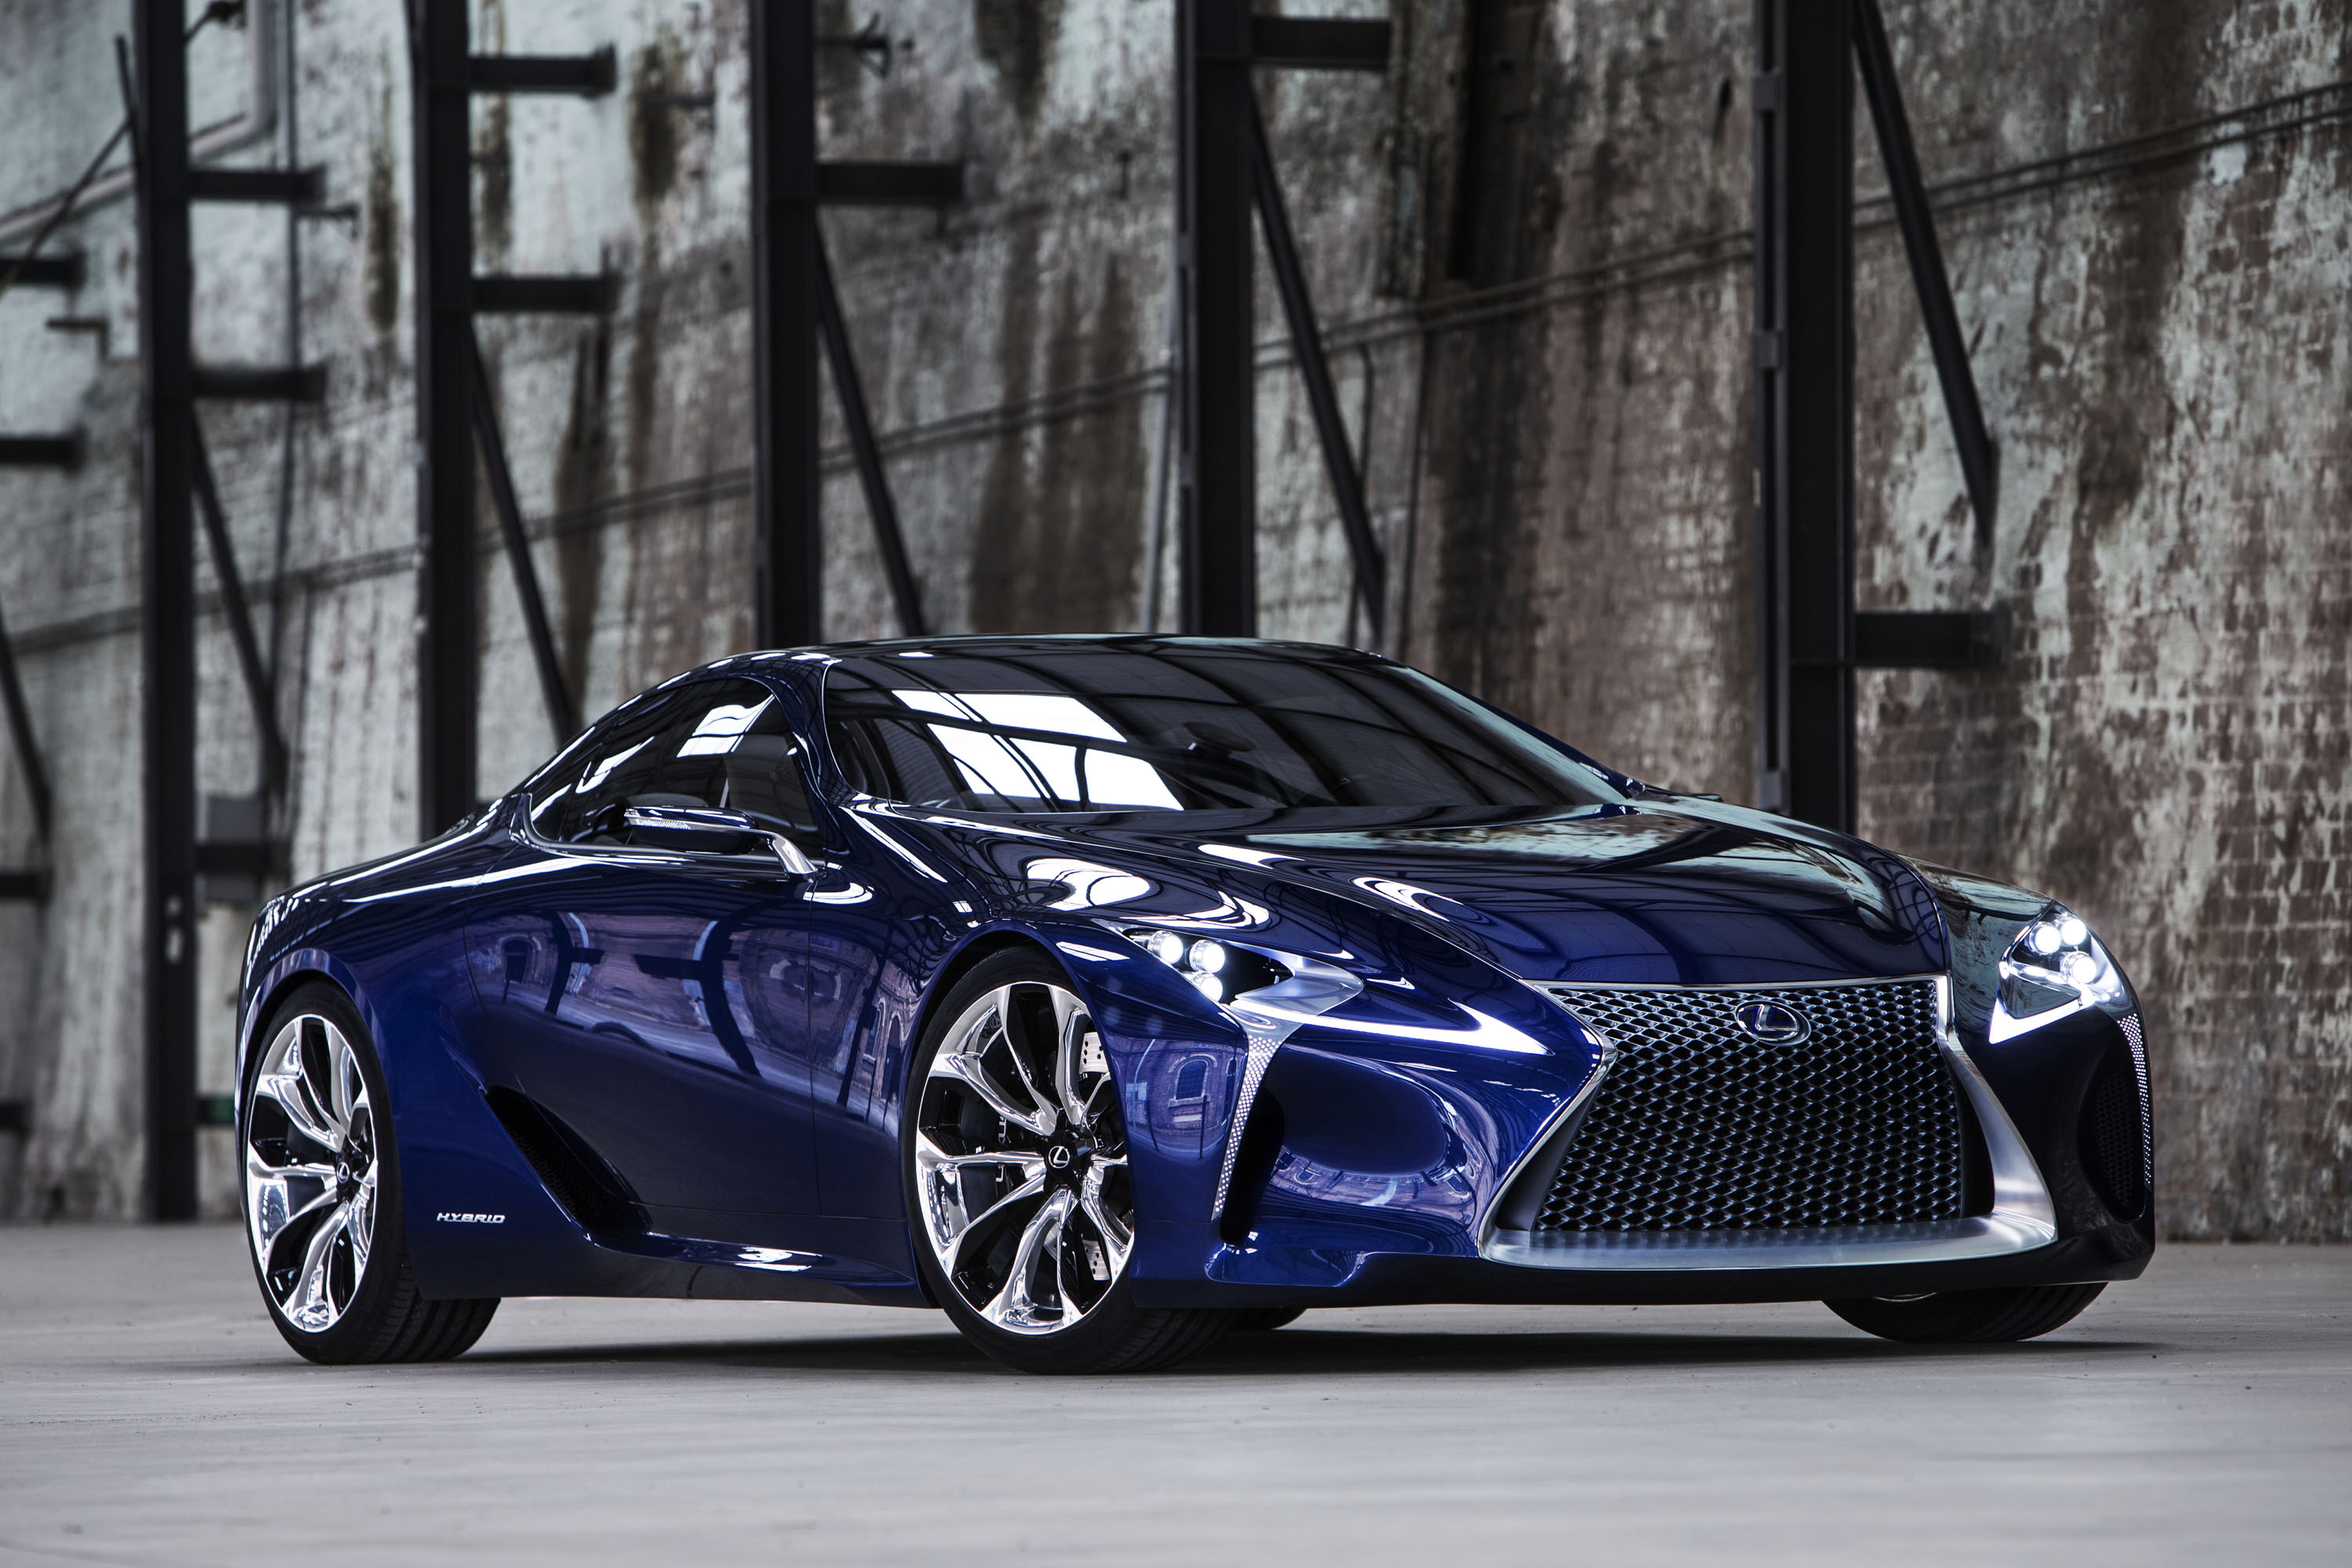 2020 Lexus LF-LC Release Date and Concept